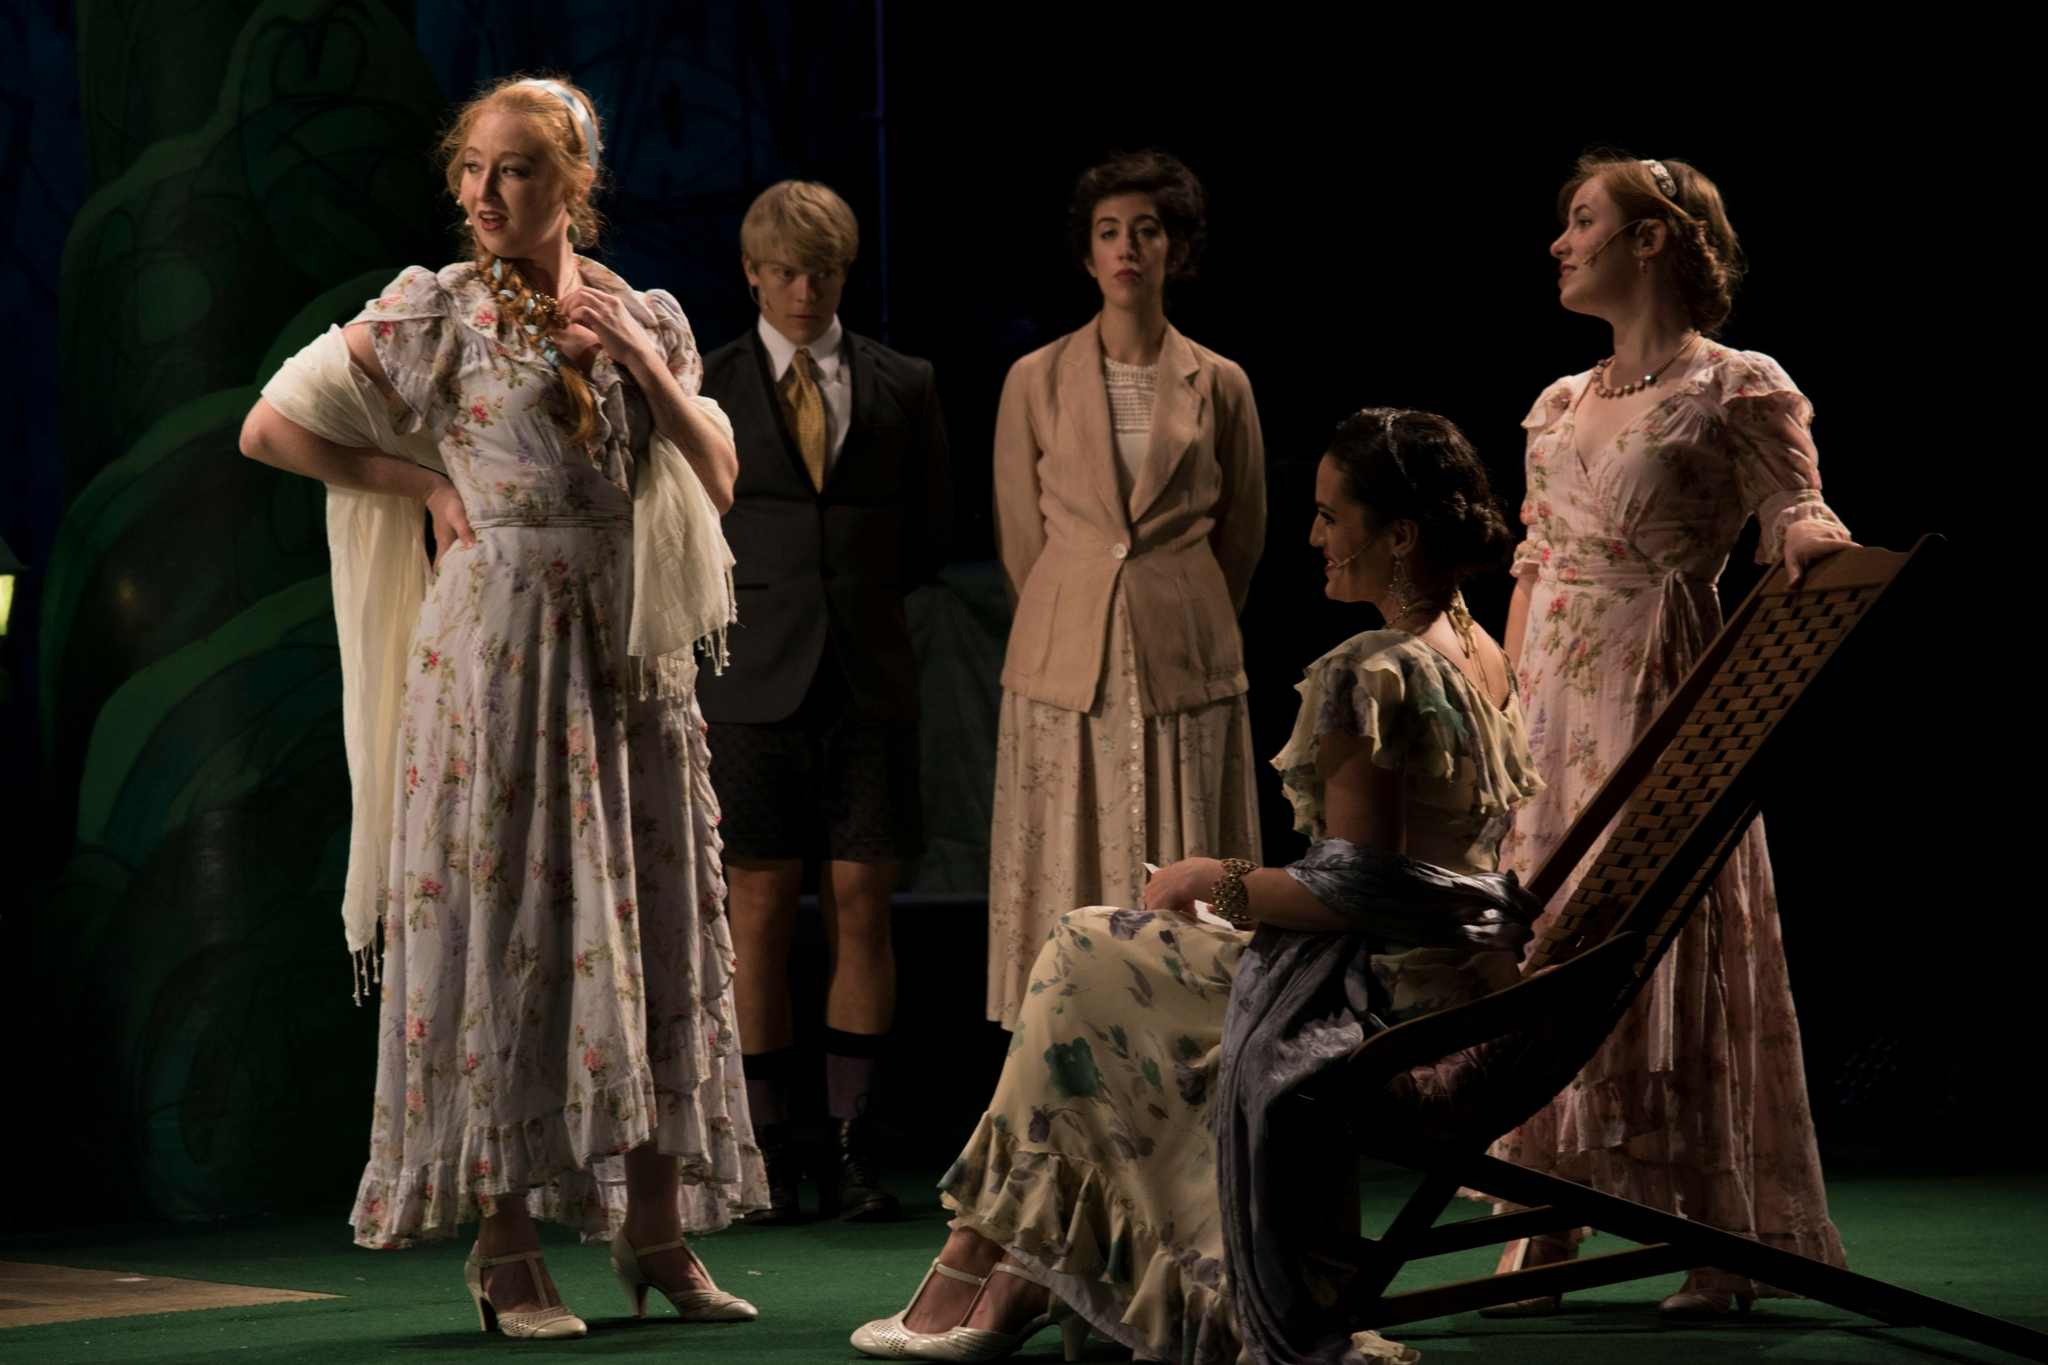 Jes Bedwinek (Maria), Colin Wulff (First Gentleman), Grace Trapnell (Ensemble), Jennifer Ellis (Princess of France), and Margaret Clark (Katharine)  in Love's Labor's Lost, Shakespeare on the Common 2016-Photo by Andrew Brilliant